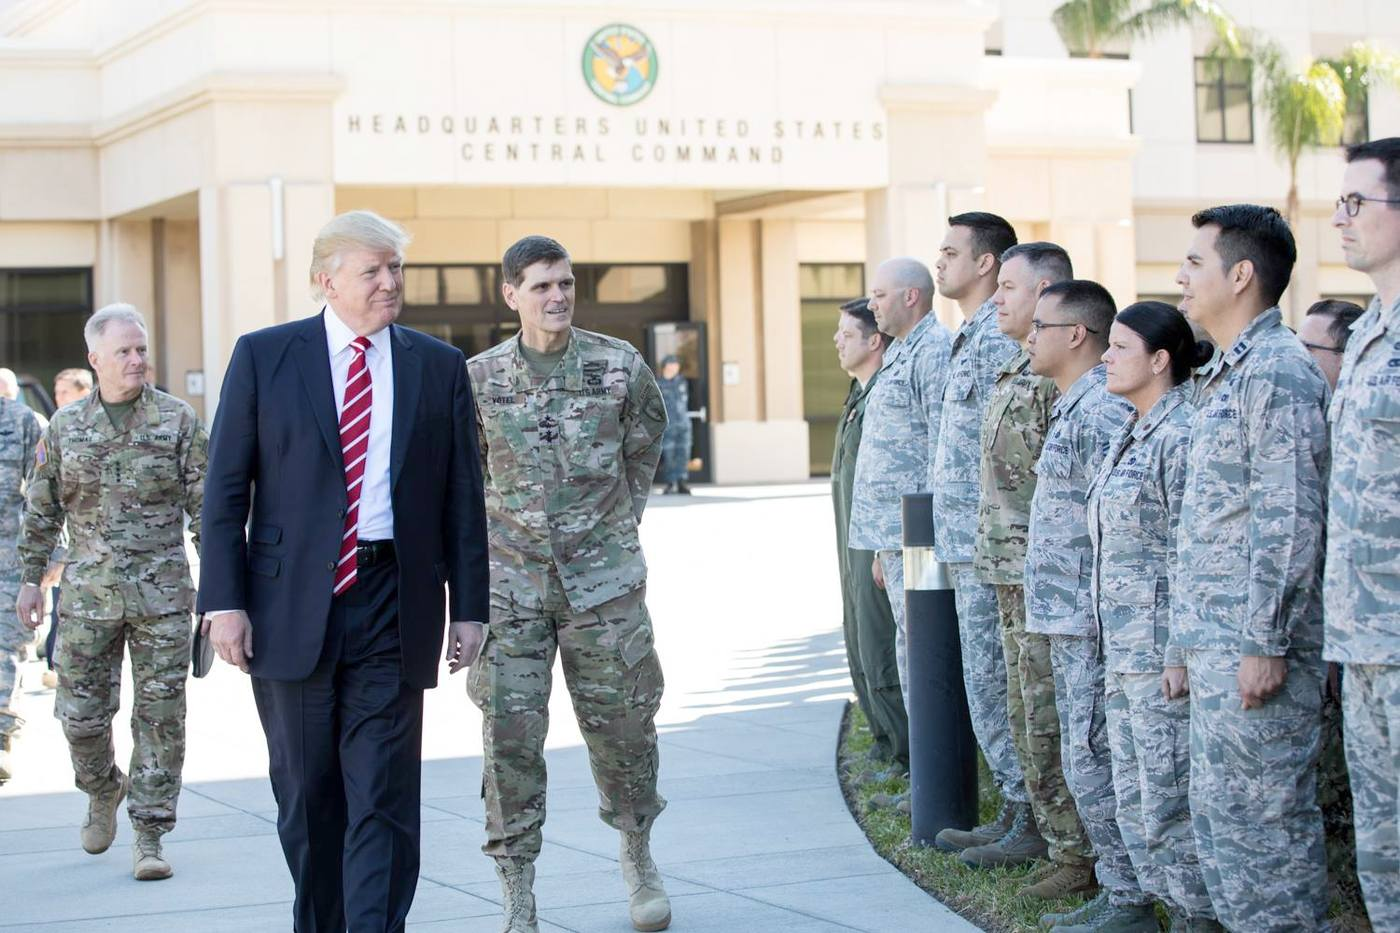 President Trump to visit Fort Drum Monday | NCPR News